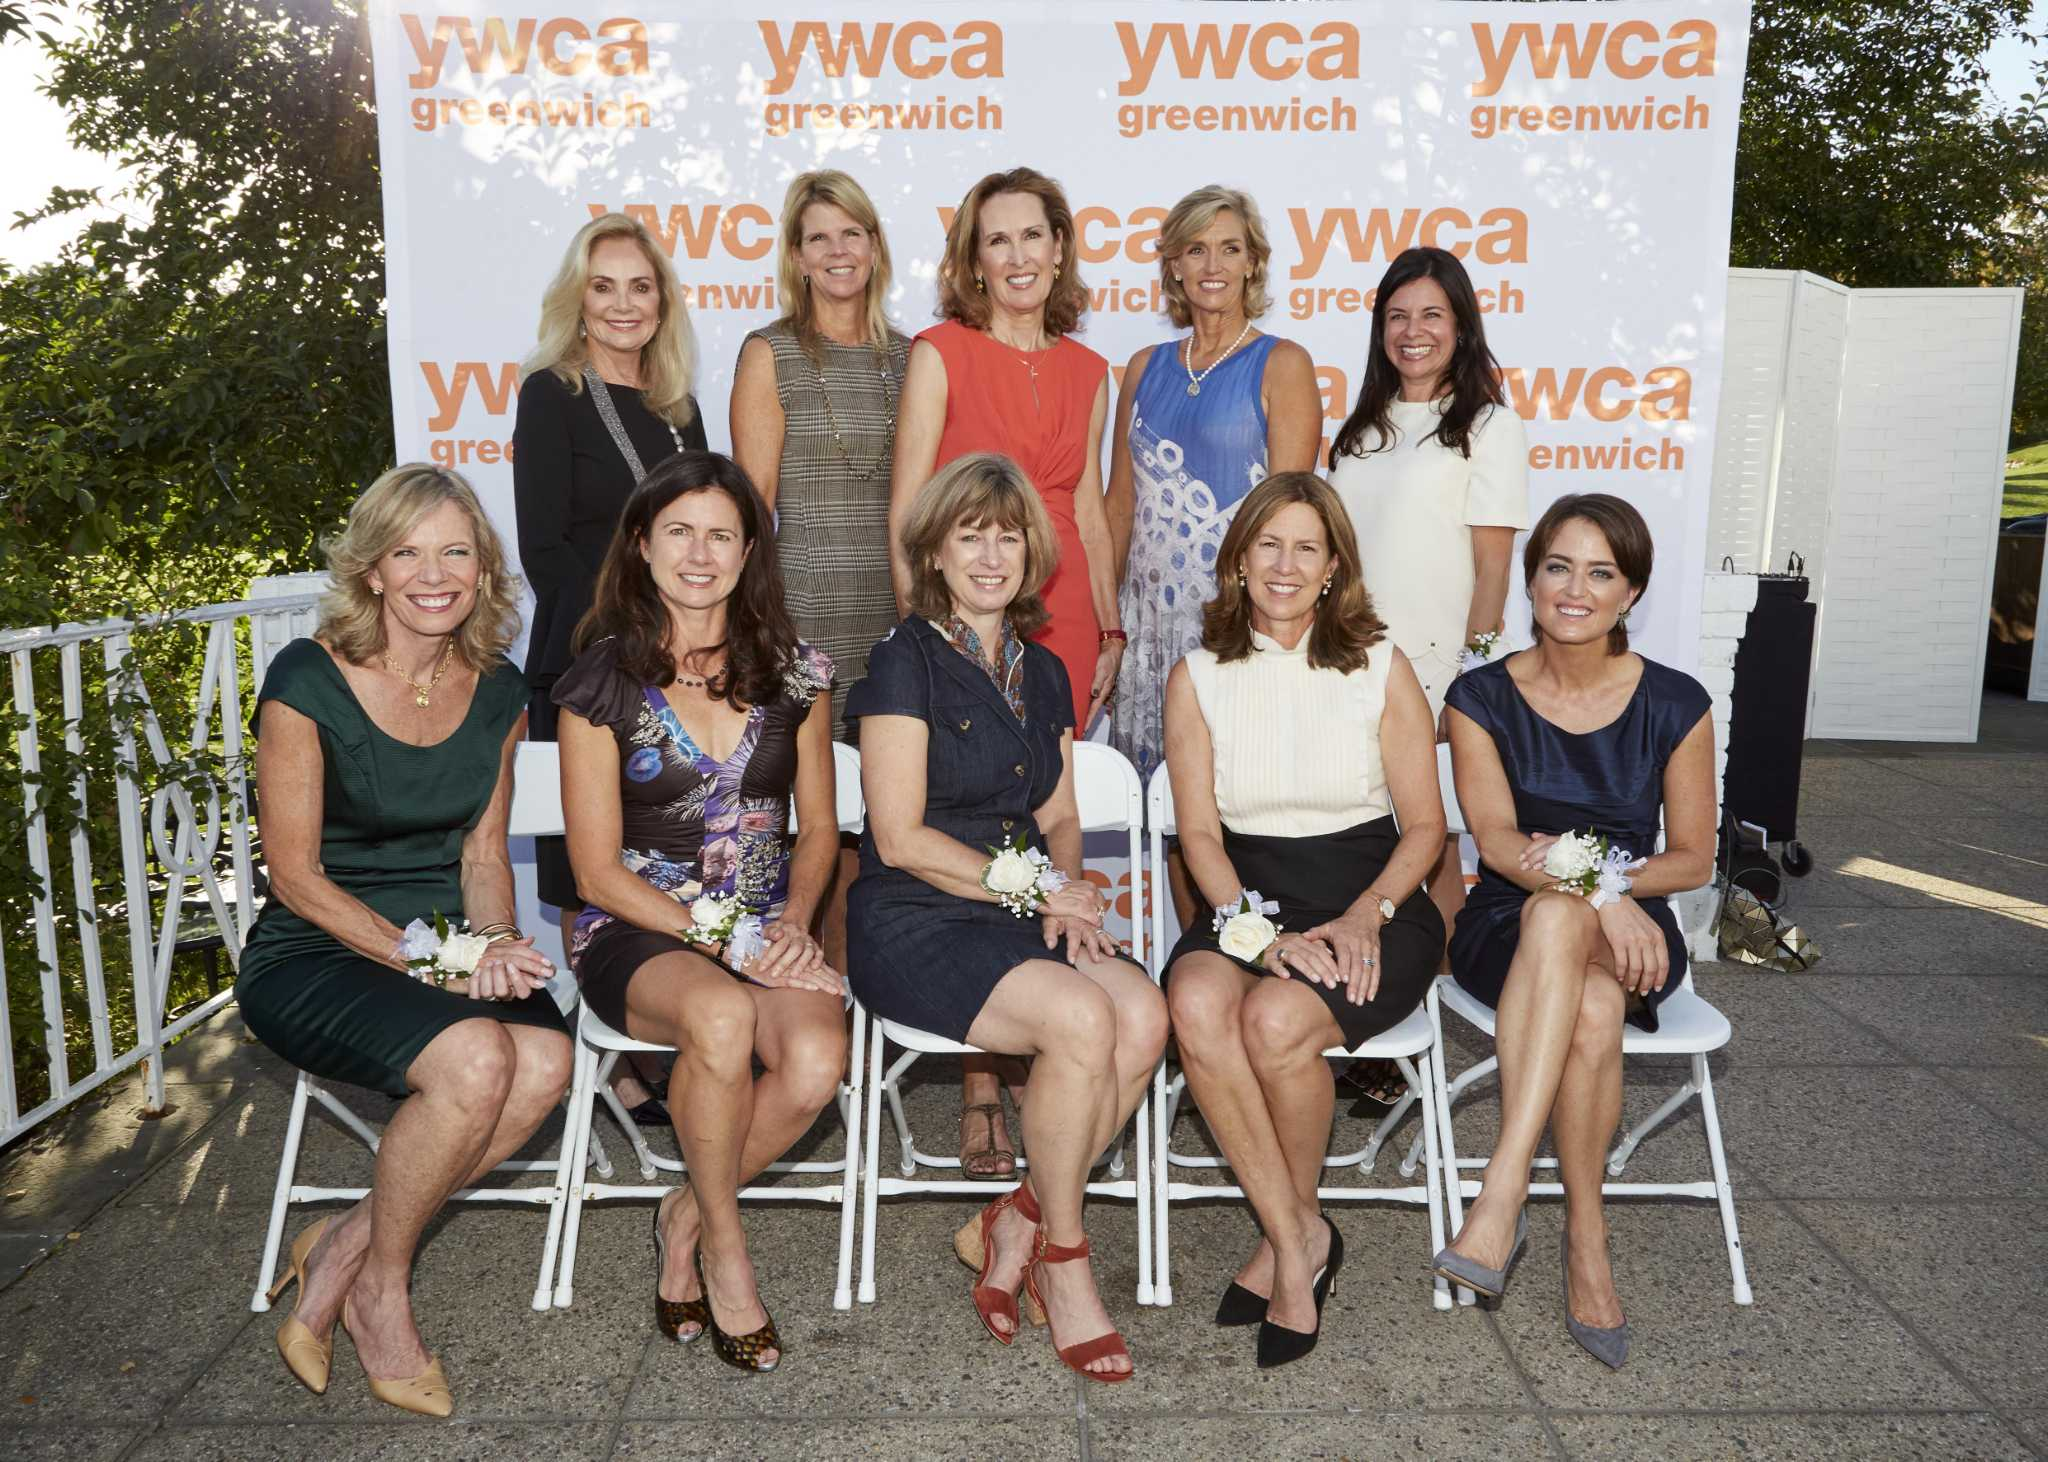 Greenwich Ywca Honors 10 For Volunteerism Spirit Of Greenwichtime